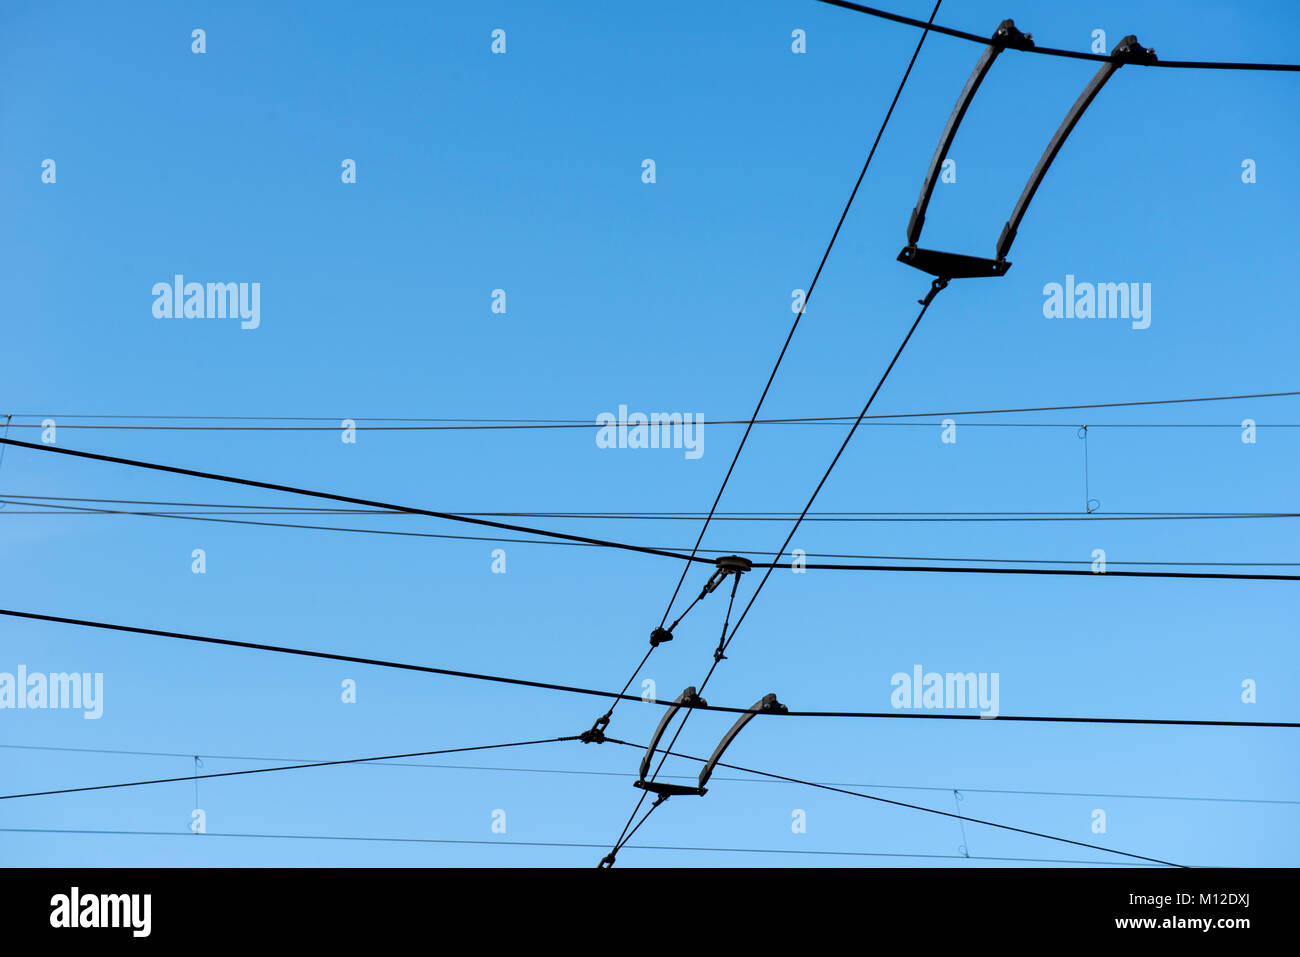 Overhead power lines for a tram system - Stock Image